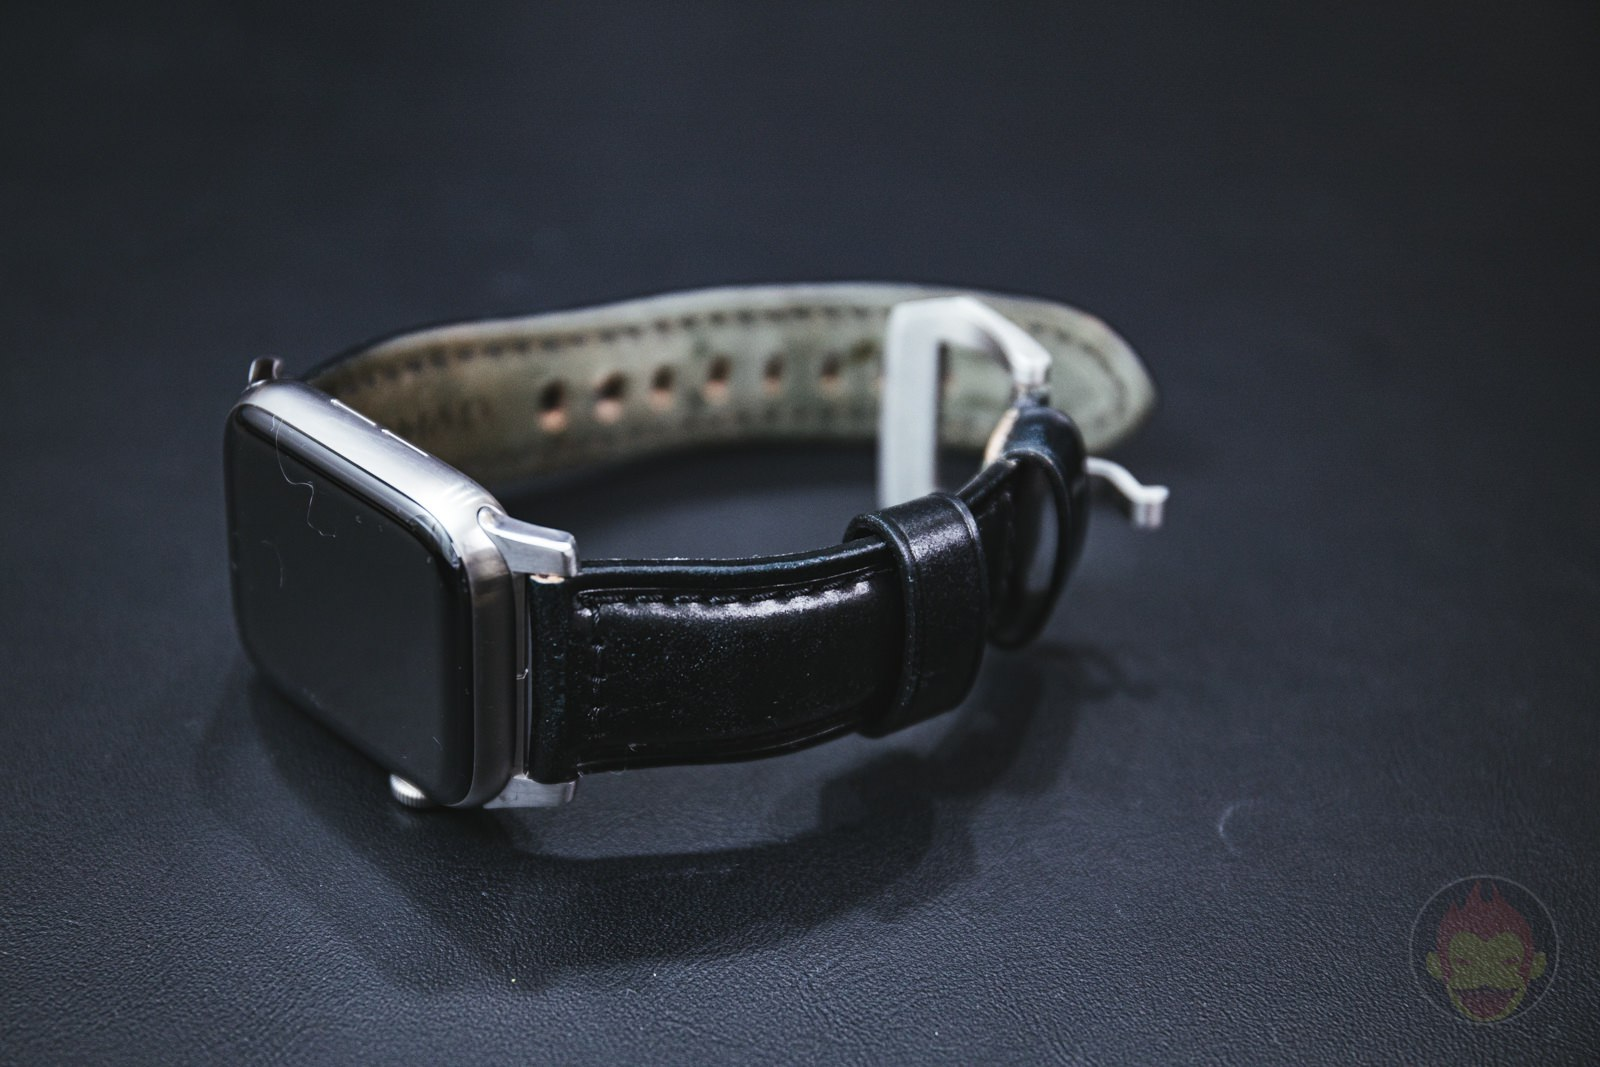 Apple-Watch-NOMAD-Shell-Cordovan-Strap-Review-06.jpg